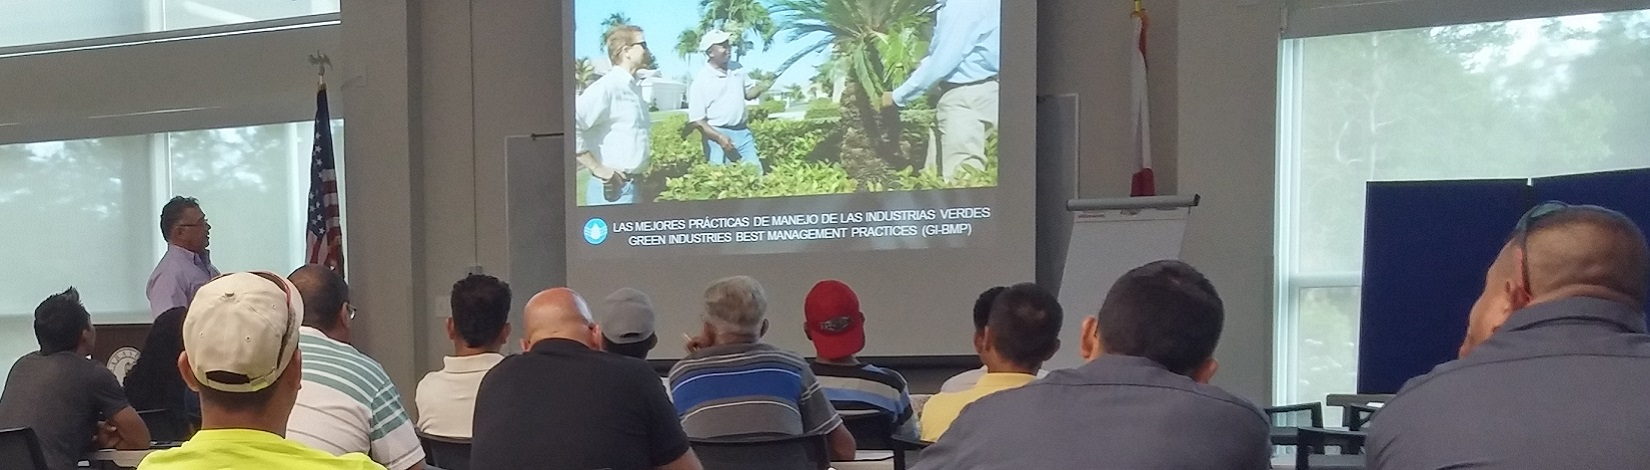 Landscape professionals attend bilingual horticulture training